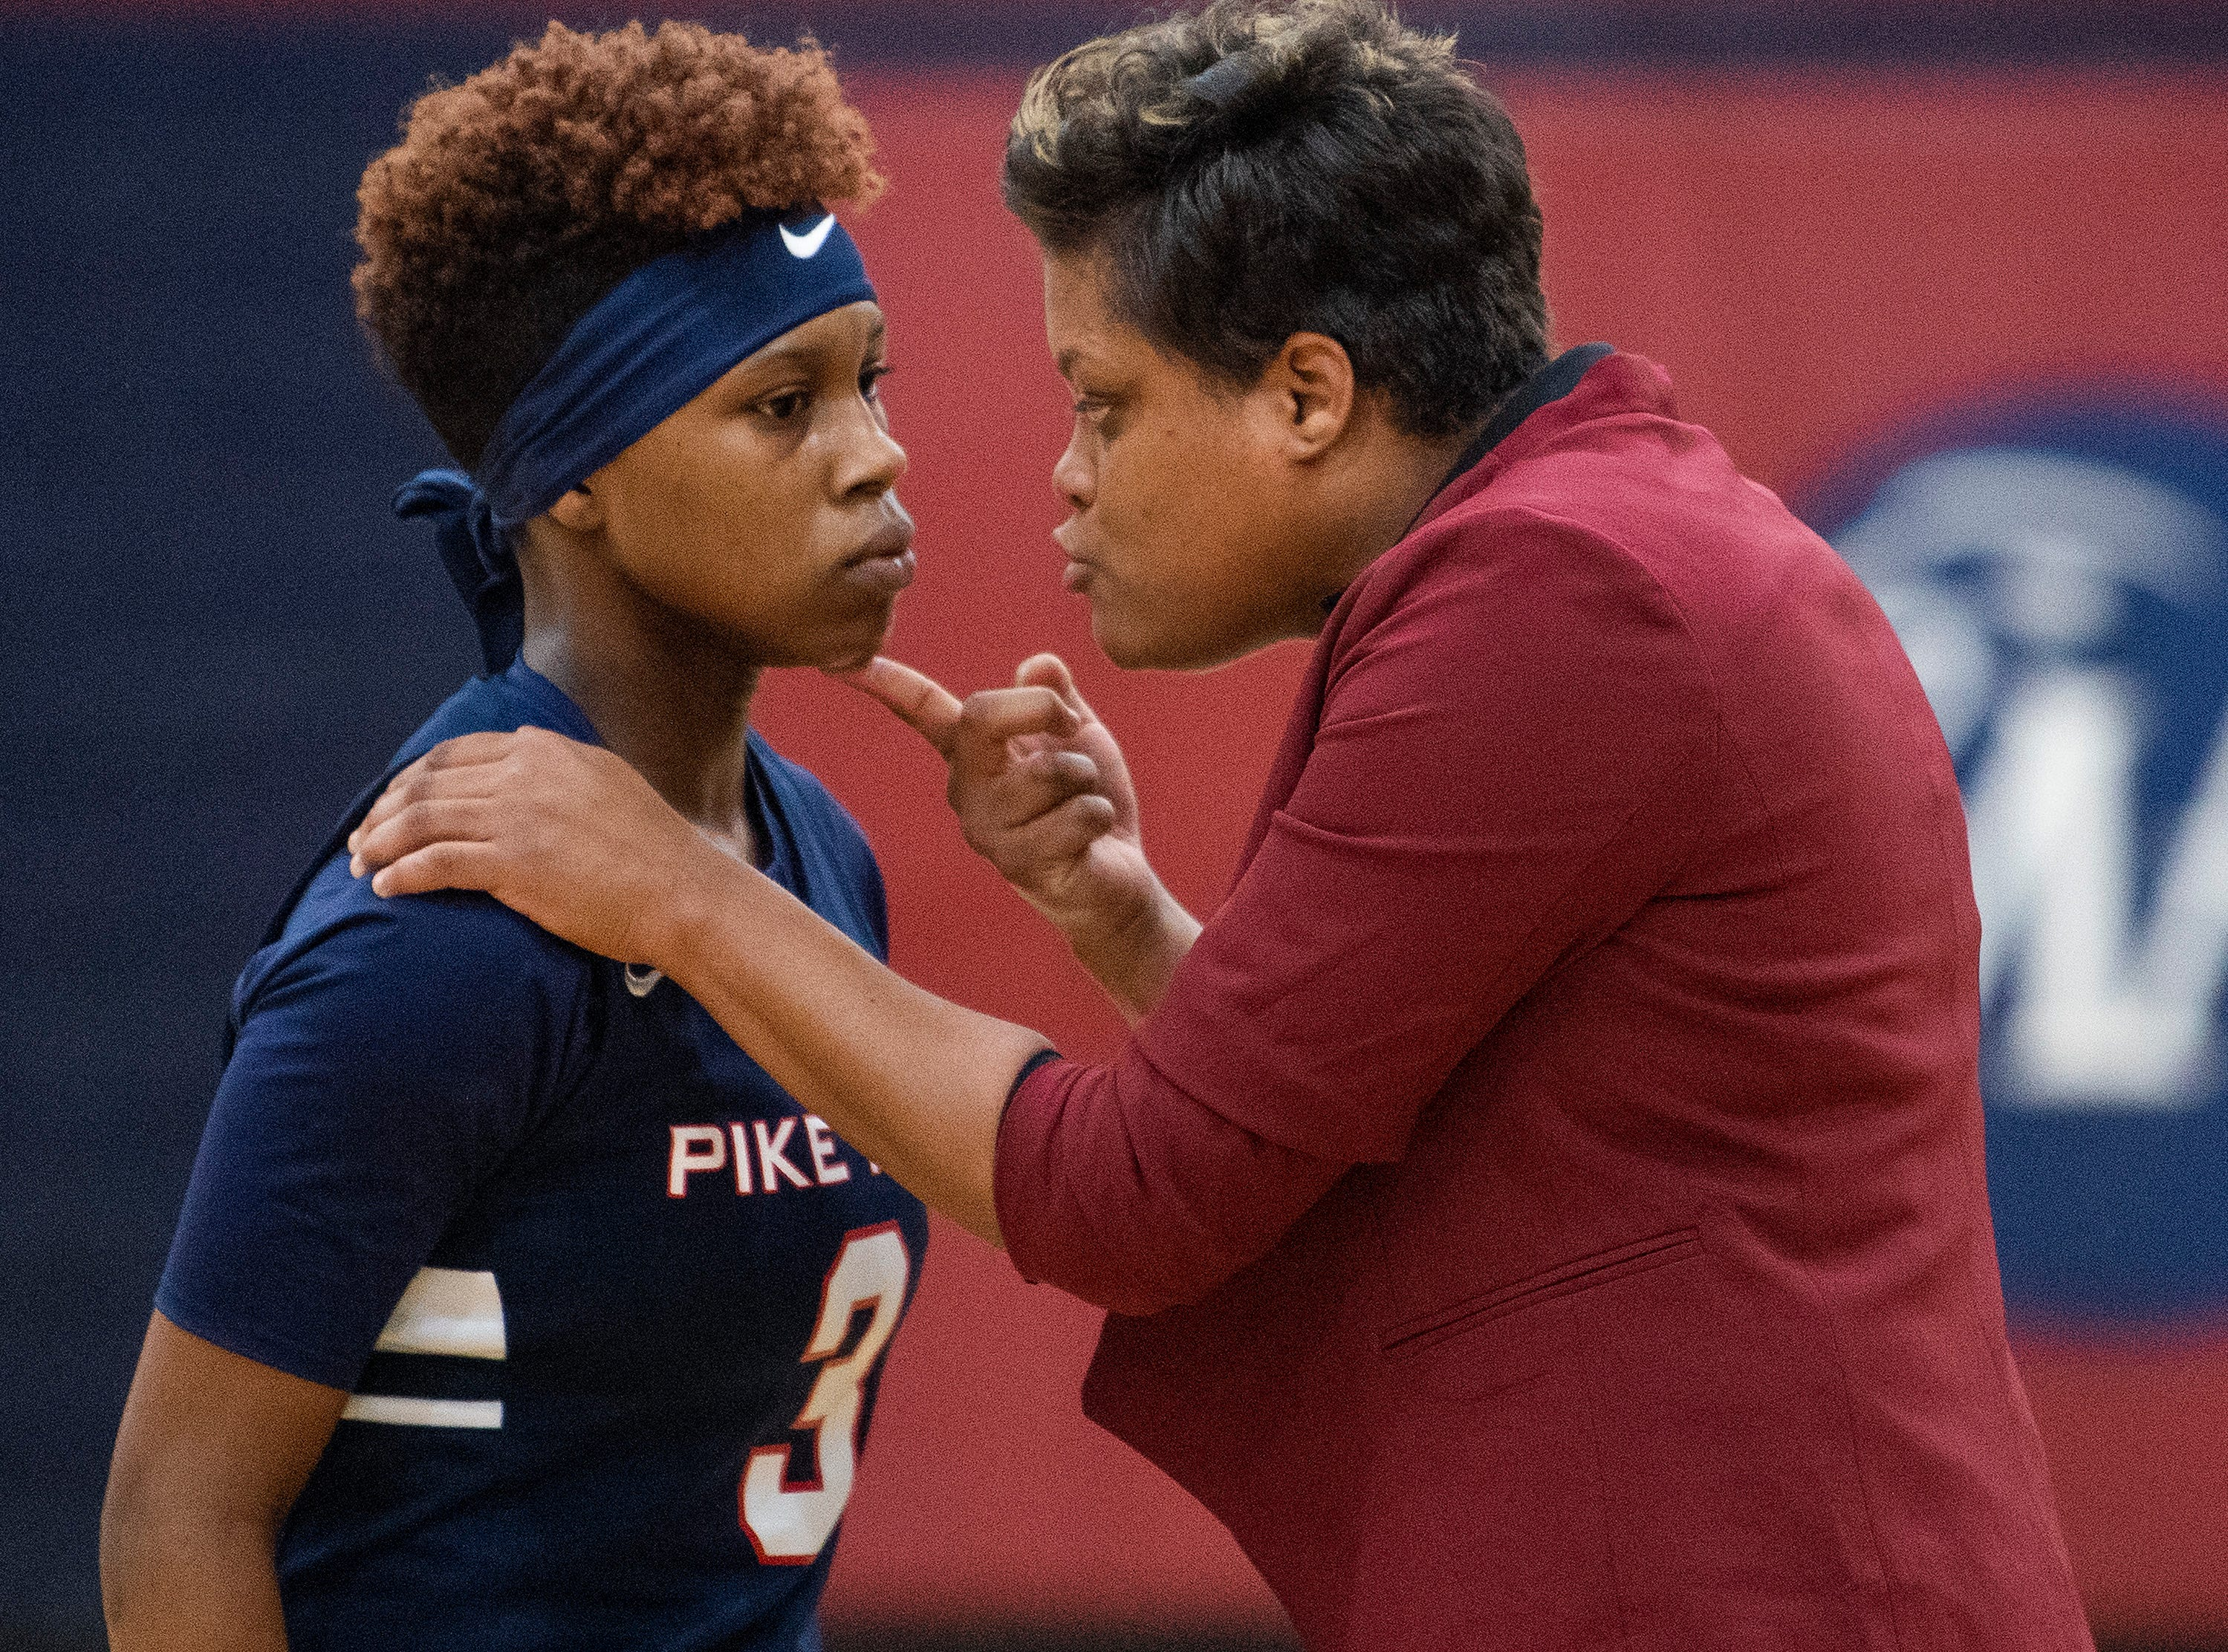 Pike Road coach Courtney Ward coaches Sheria Clement (3) against Montgomery Academy on the MA campus in Montgomery, Ala., on Friday February 8, 2019.